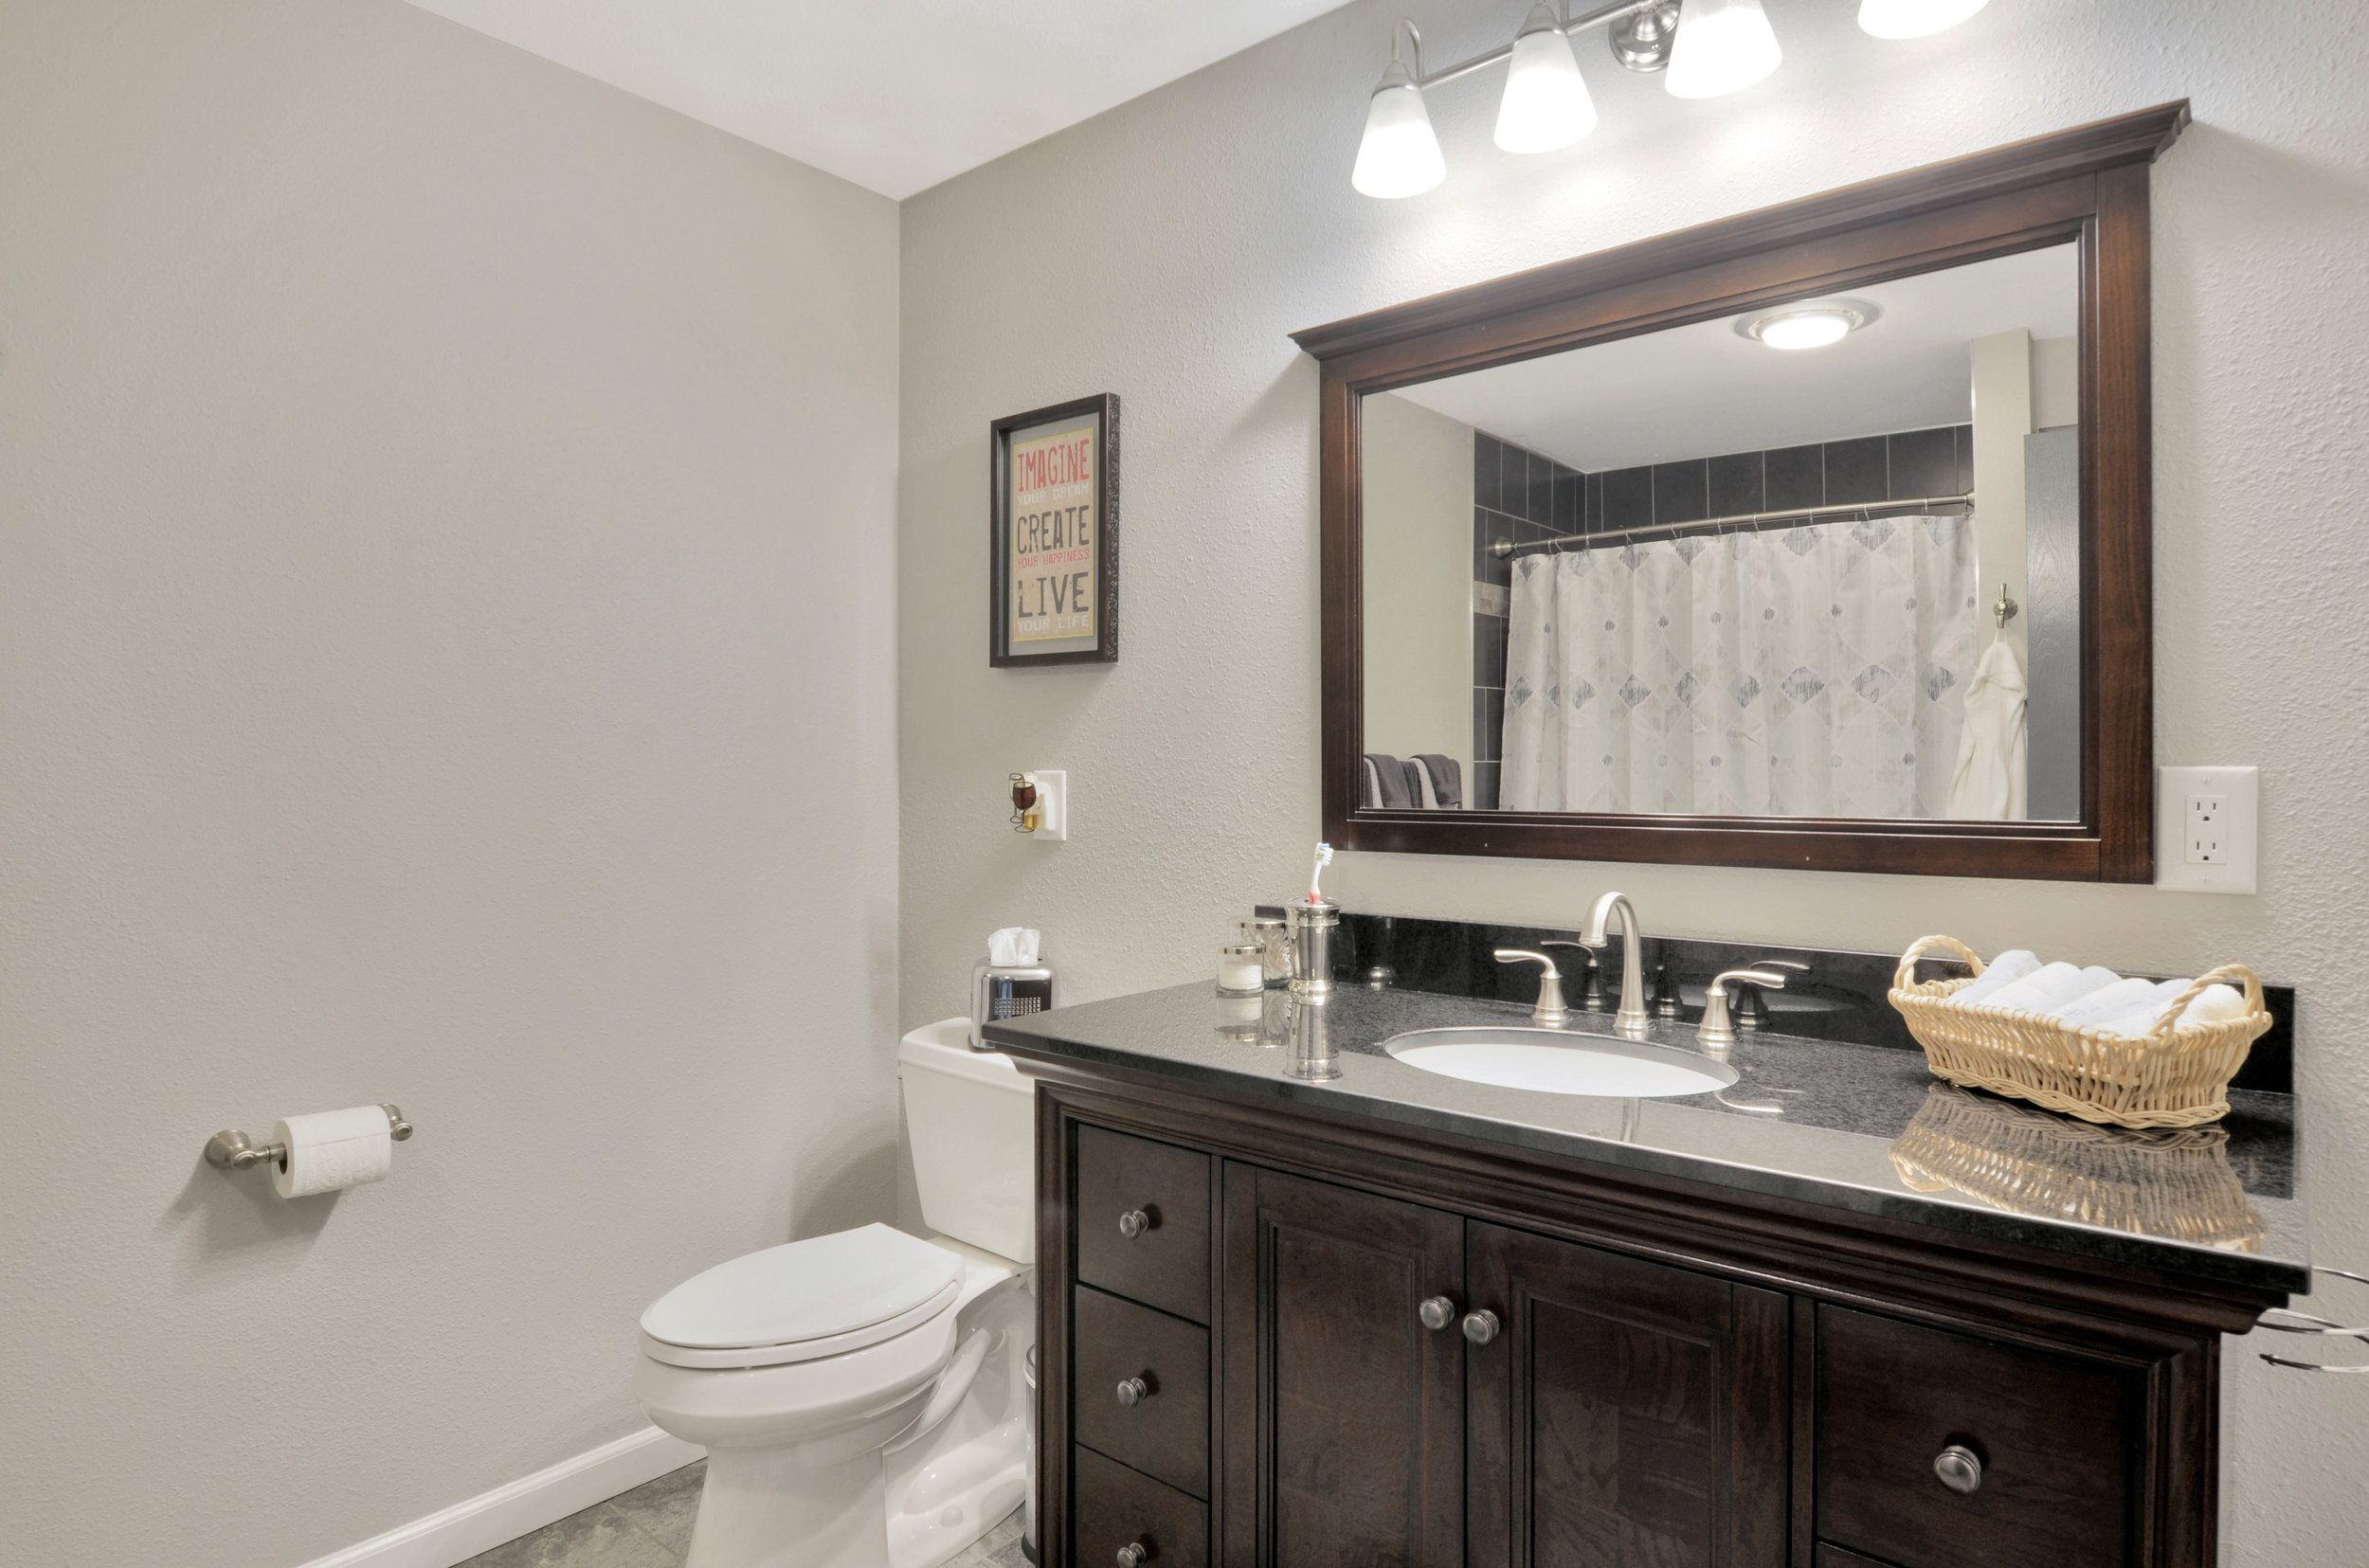 The full bath is found in the hall with the bedrooms and is easy to access from the main living space as well. This bath has a jacuzzi tub. Catch a glimpse of the tiled shower/jacuzzi bath in the mirror here.